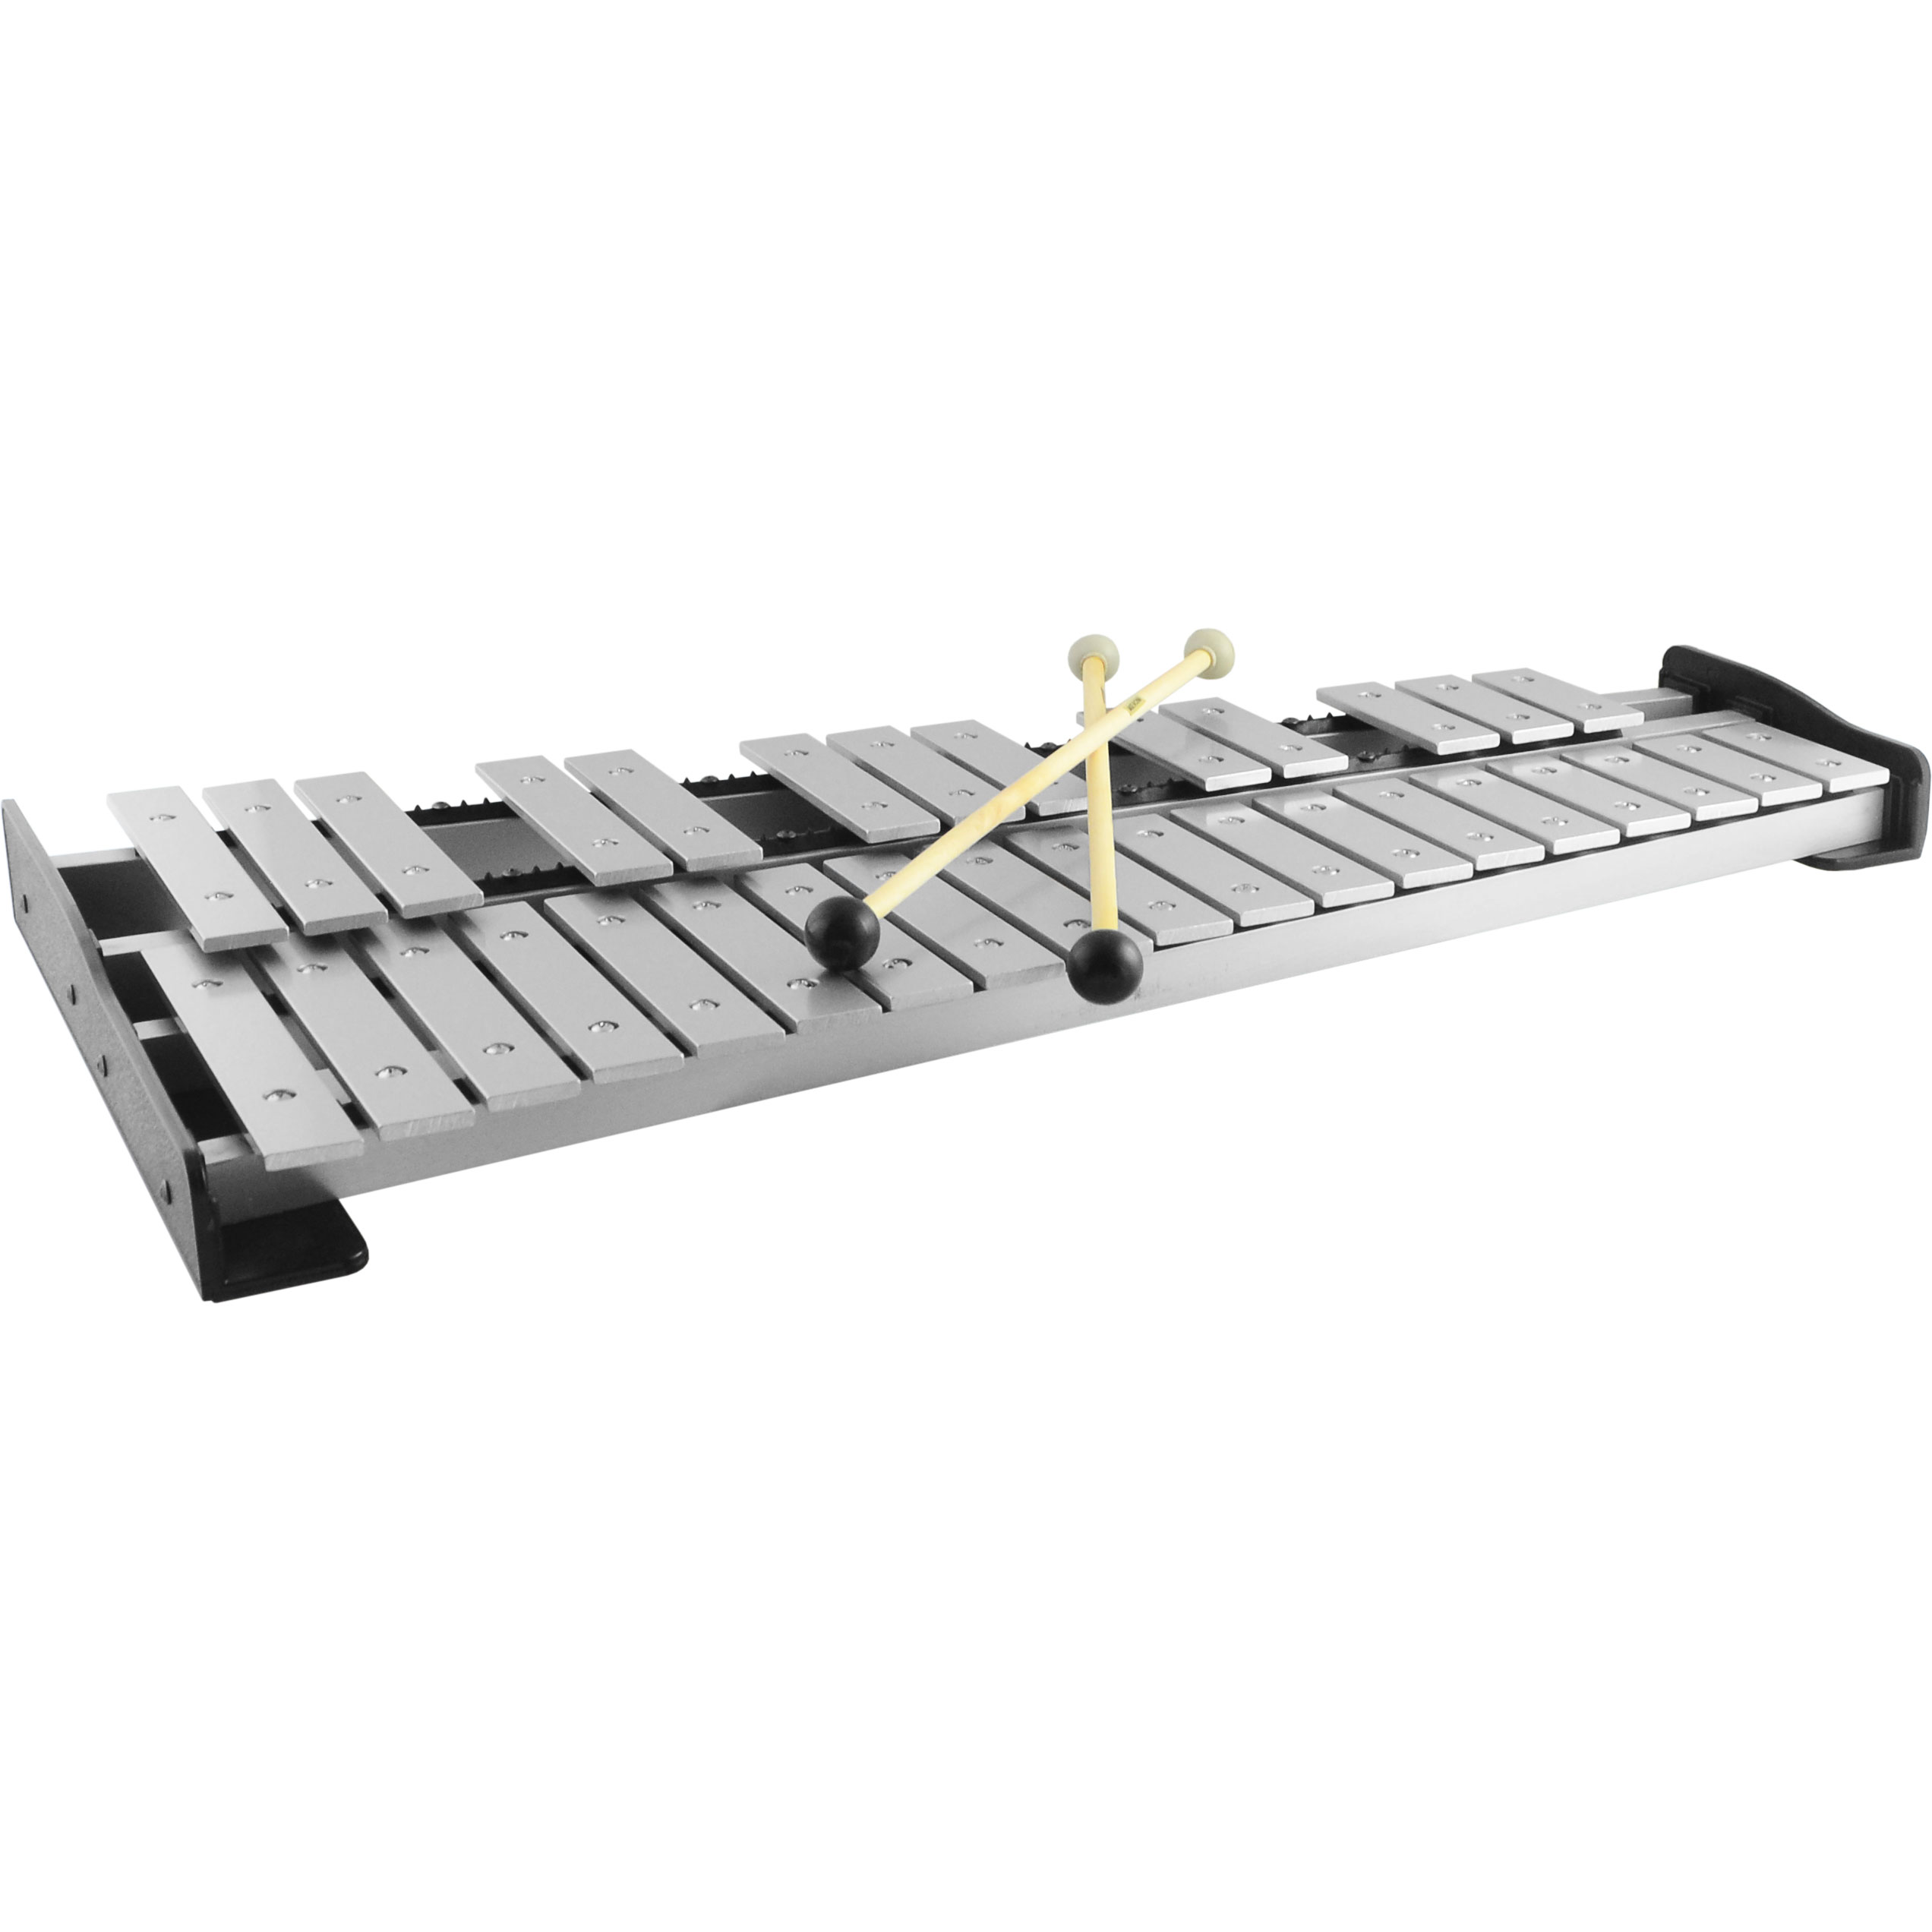 Yamaha Student Percussion 2.5 Octave Bells